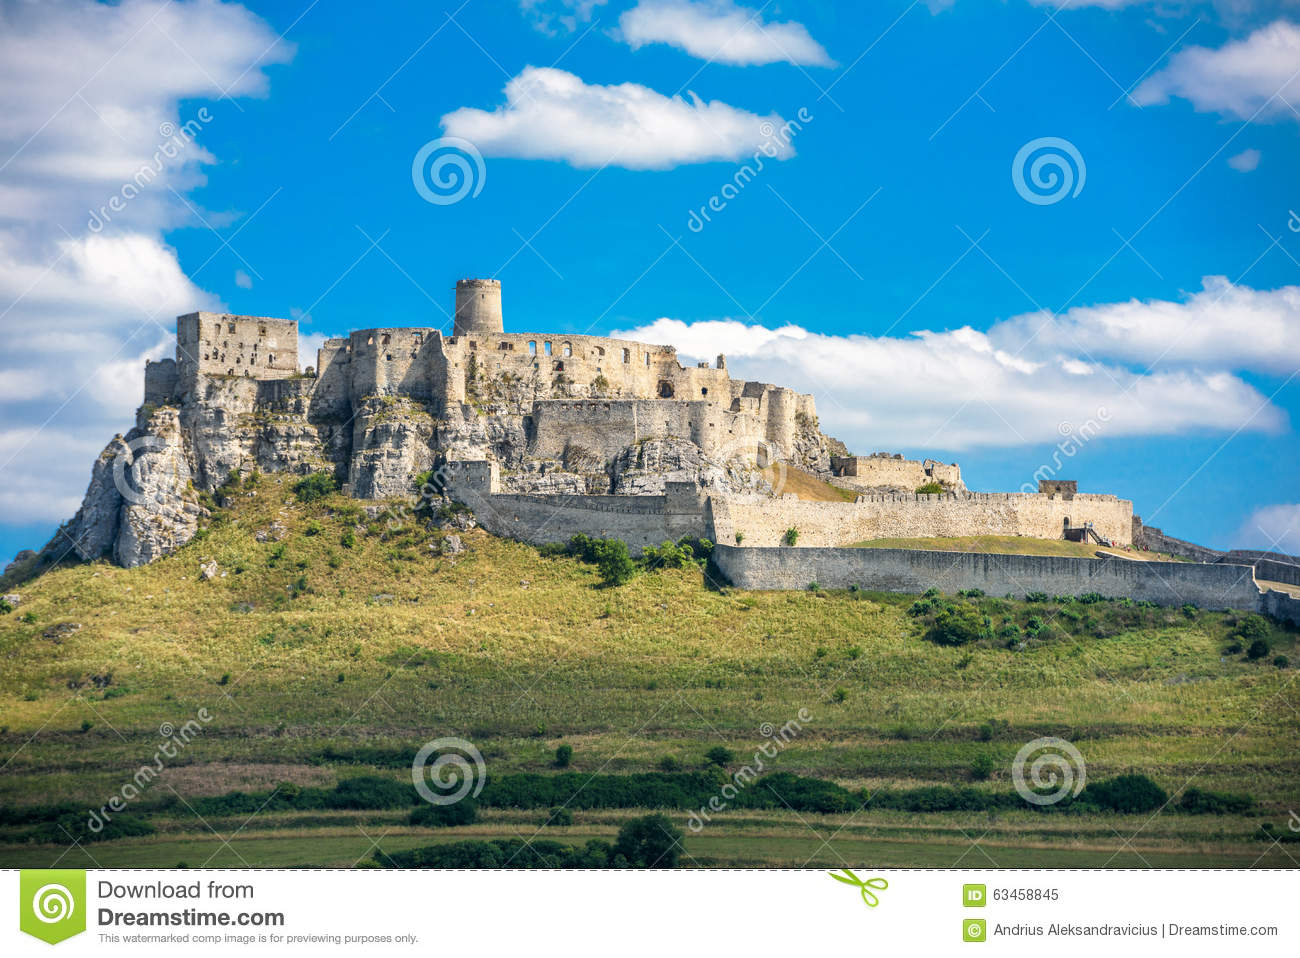 The ruins of Spis castle, Slovakia